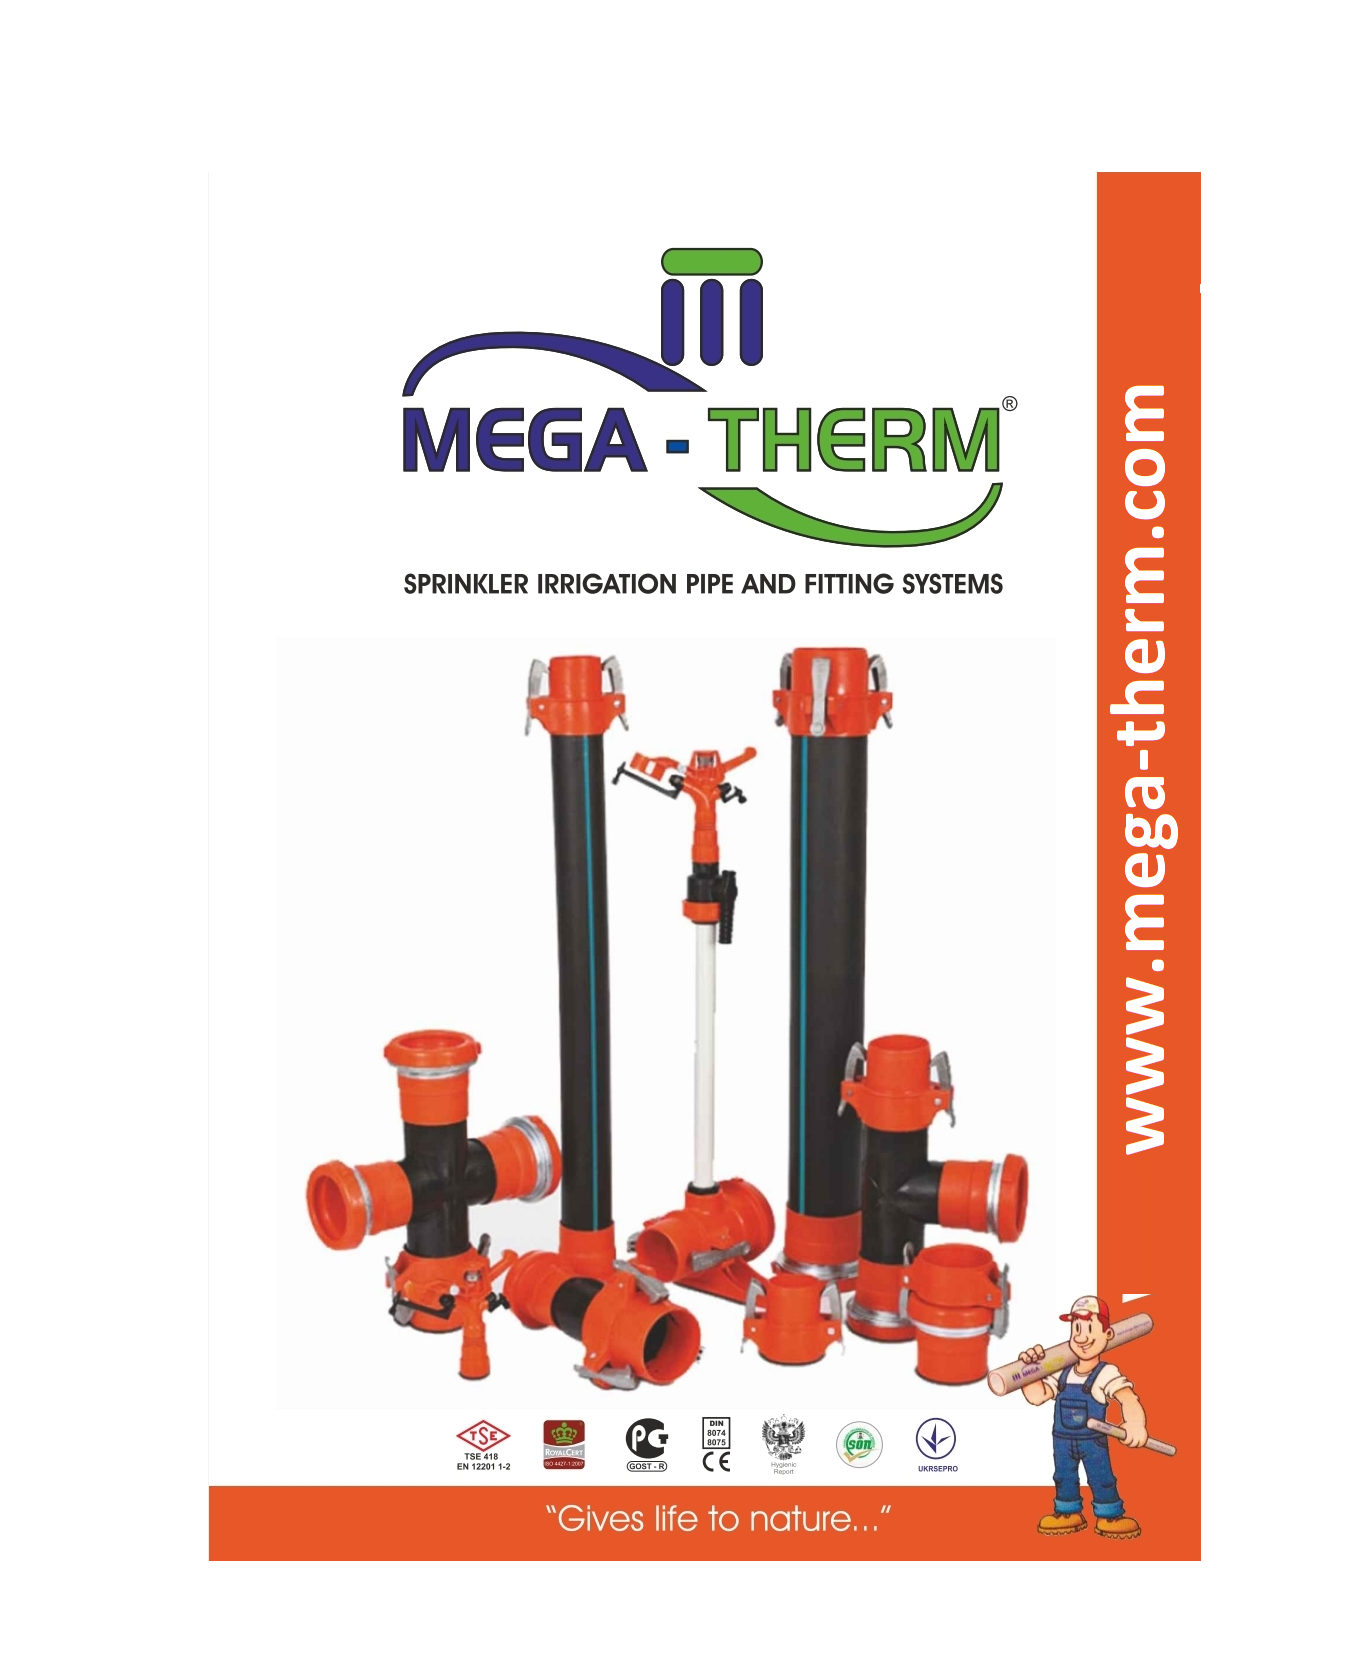 Mega-Therm Agricultural Pipes